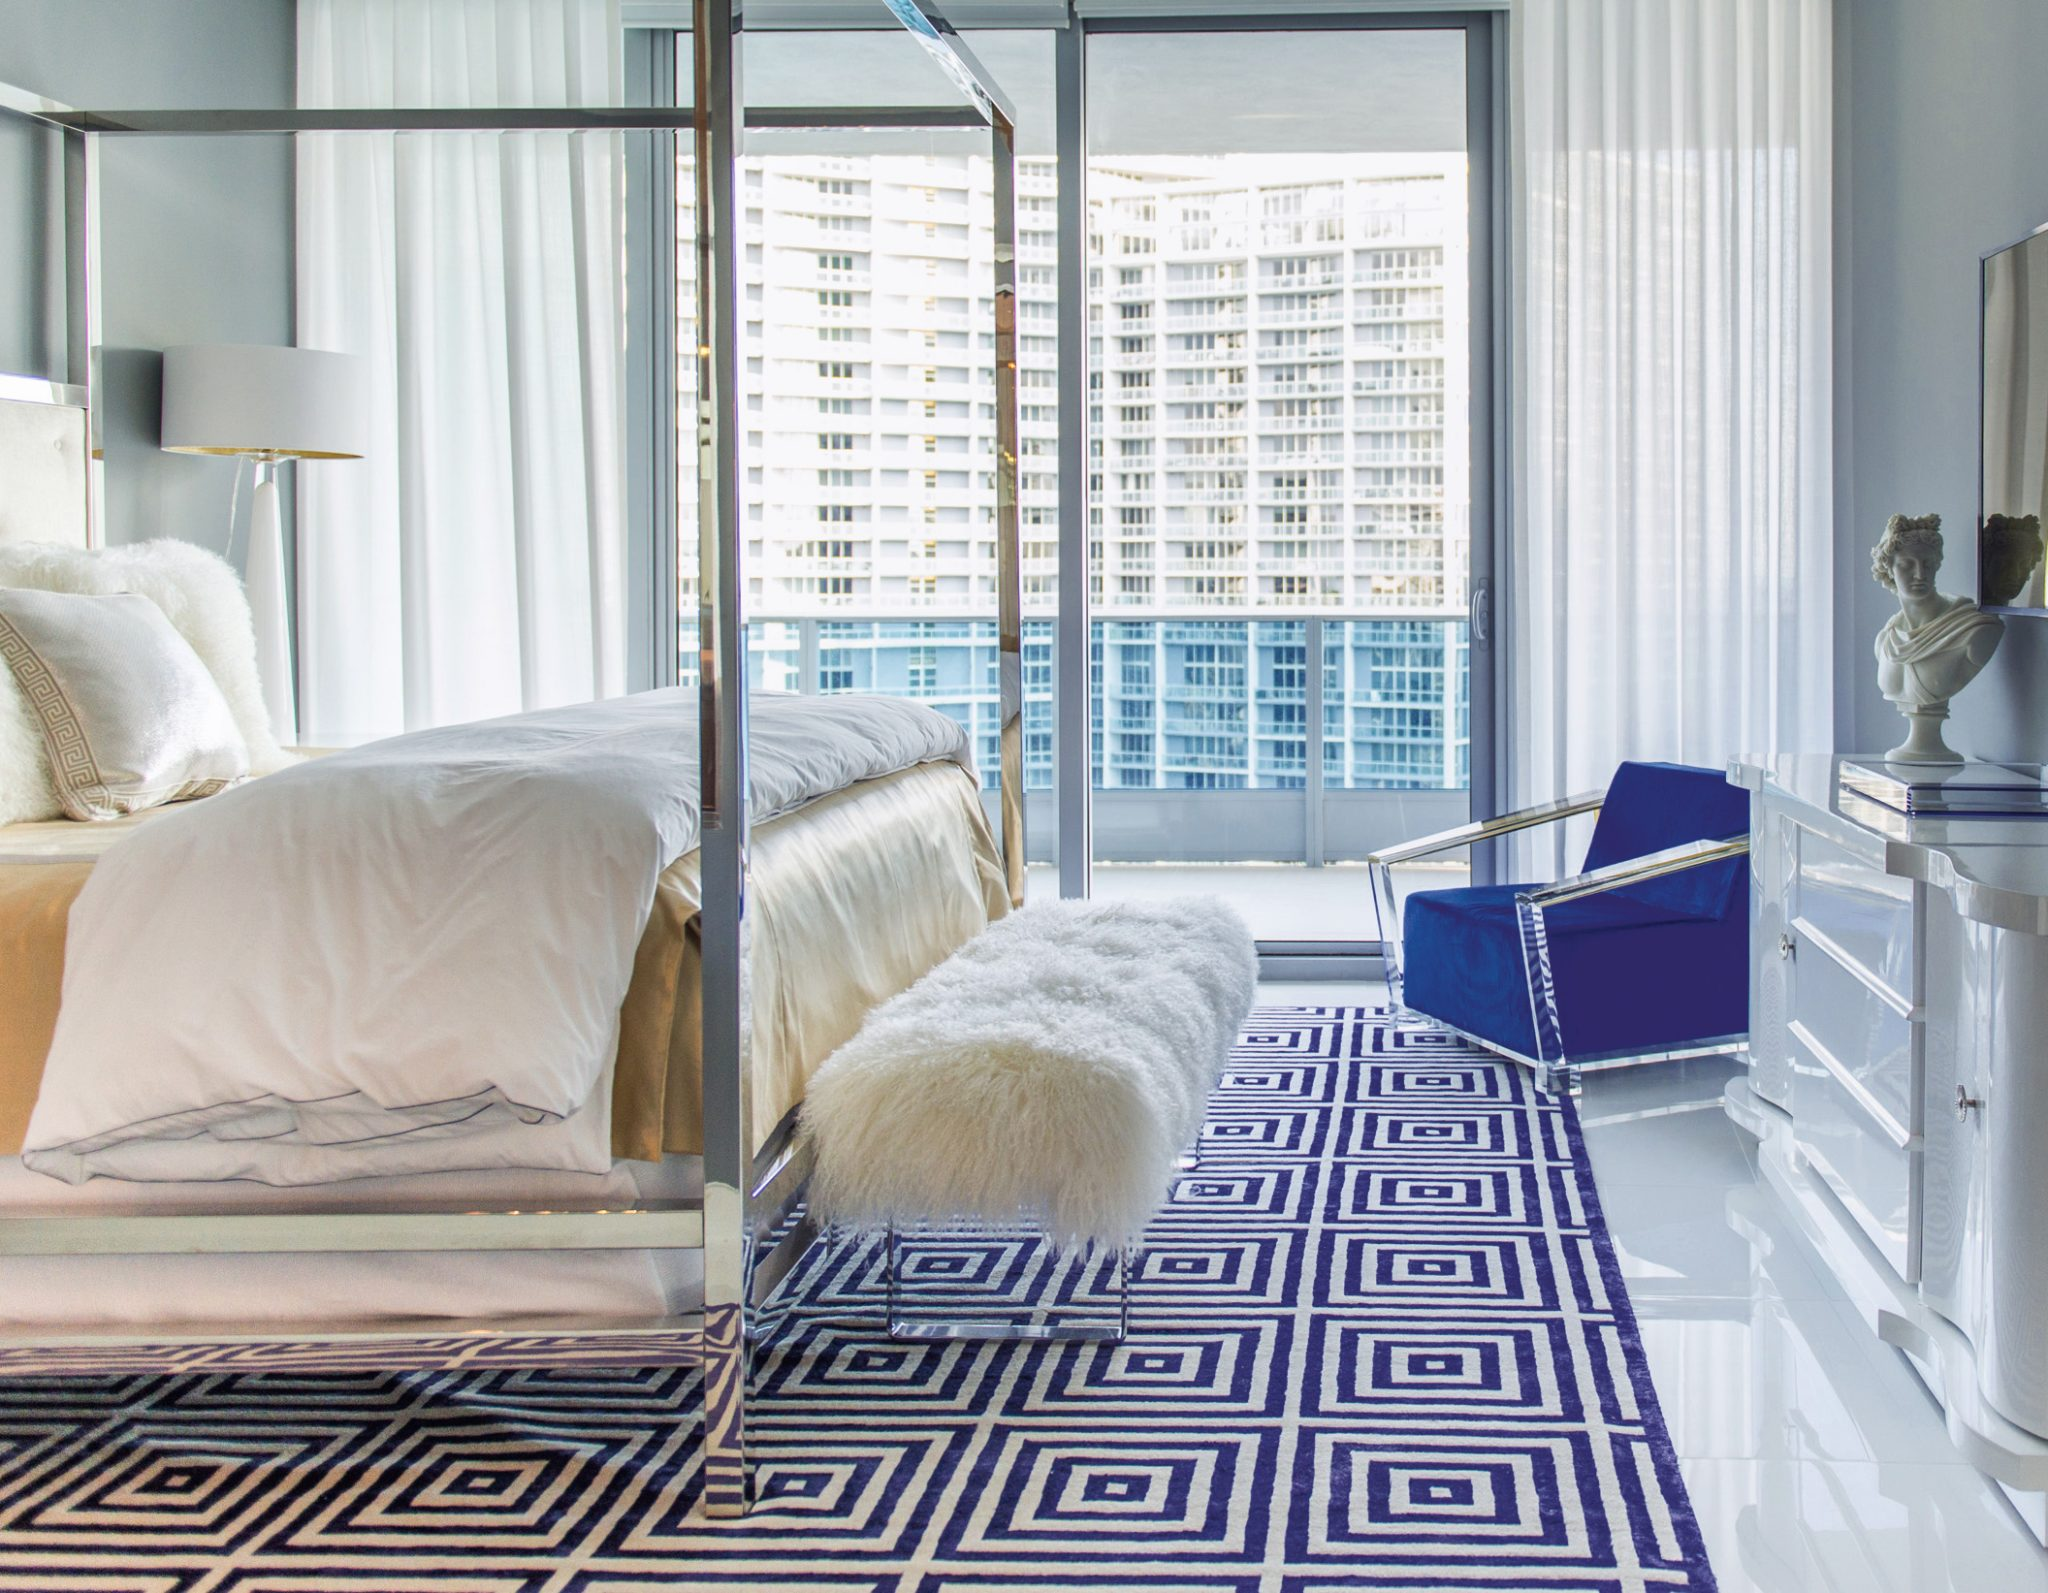 A master bedroom infused with sleek lines, shiny metal and pops of electric blues. By Taylor & Taylor